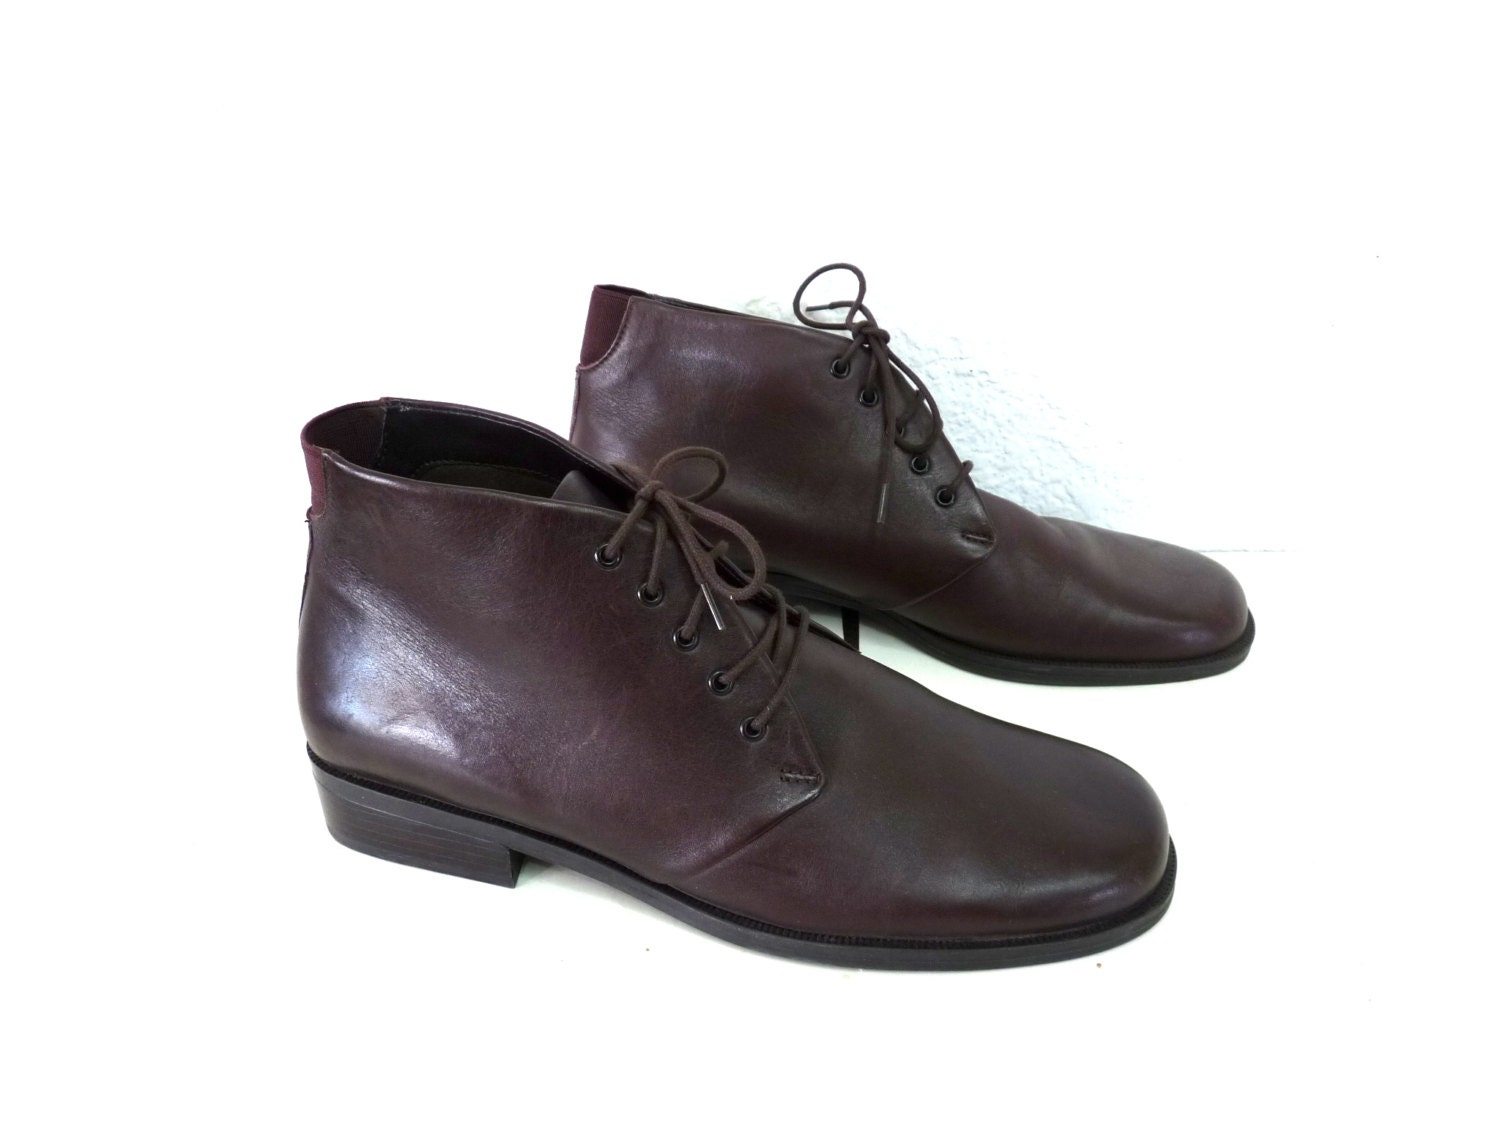 vintage brown leather boots ankle lace up womens size 7 5